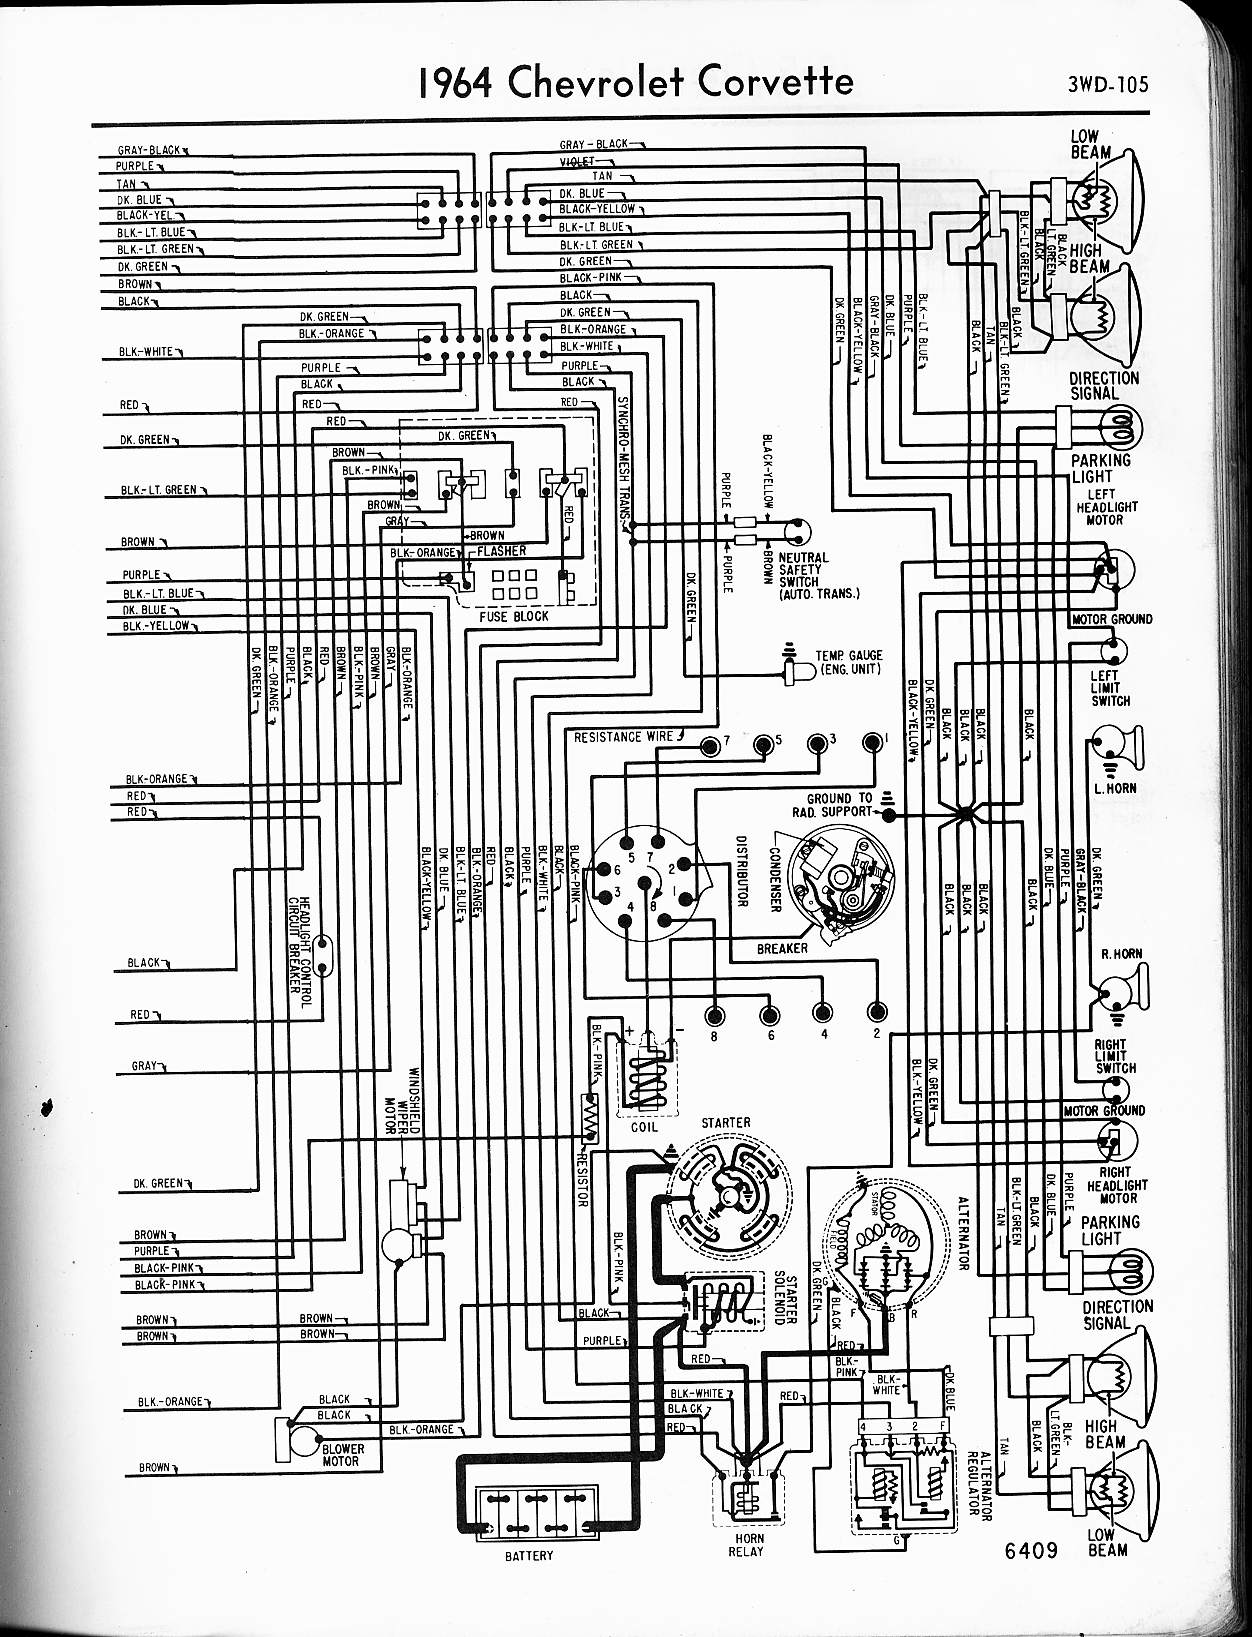 Wiring Diagram 1971 Camaro Simple Guide About Audio 88 57 65 Chevy Diagrams